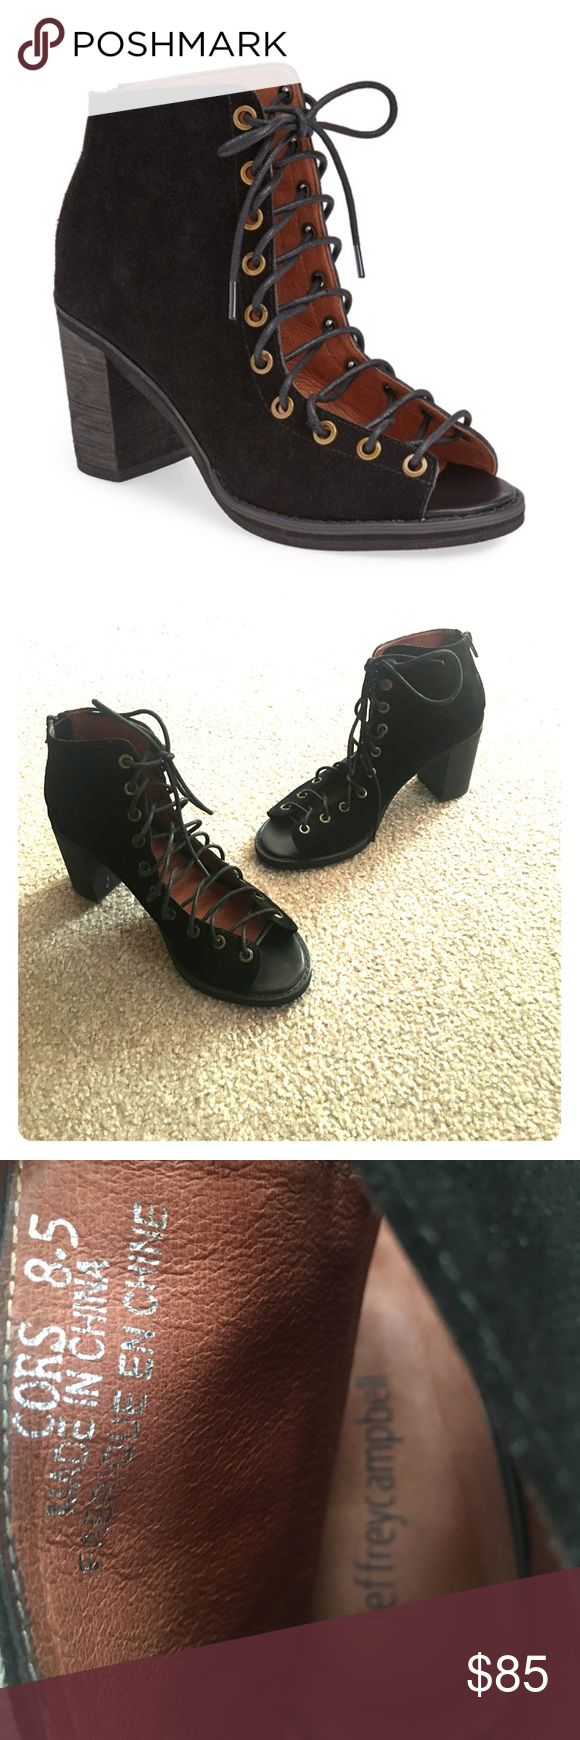 JEFFREY CAMPBELL 'CORS' BOOTIE Jeffrey Campbell 'Cors' suede peep toe lace up bootie. Black. Size 8.5. True to size. Worn once! No flaws. Jeffrey Campbell Shoes Ankle Boots & Booties